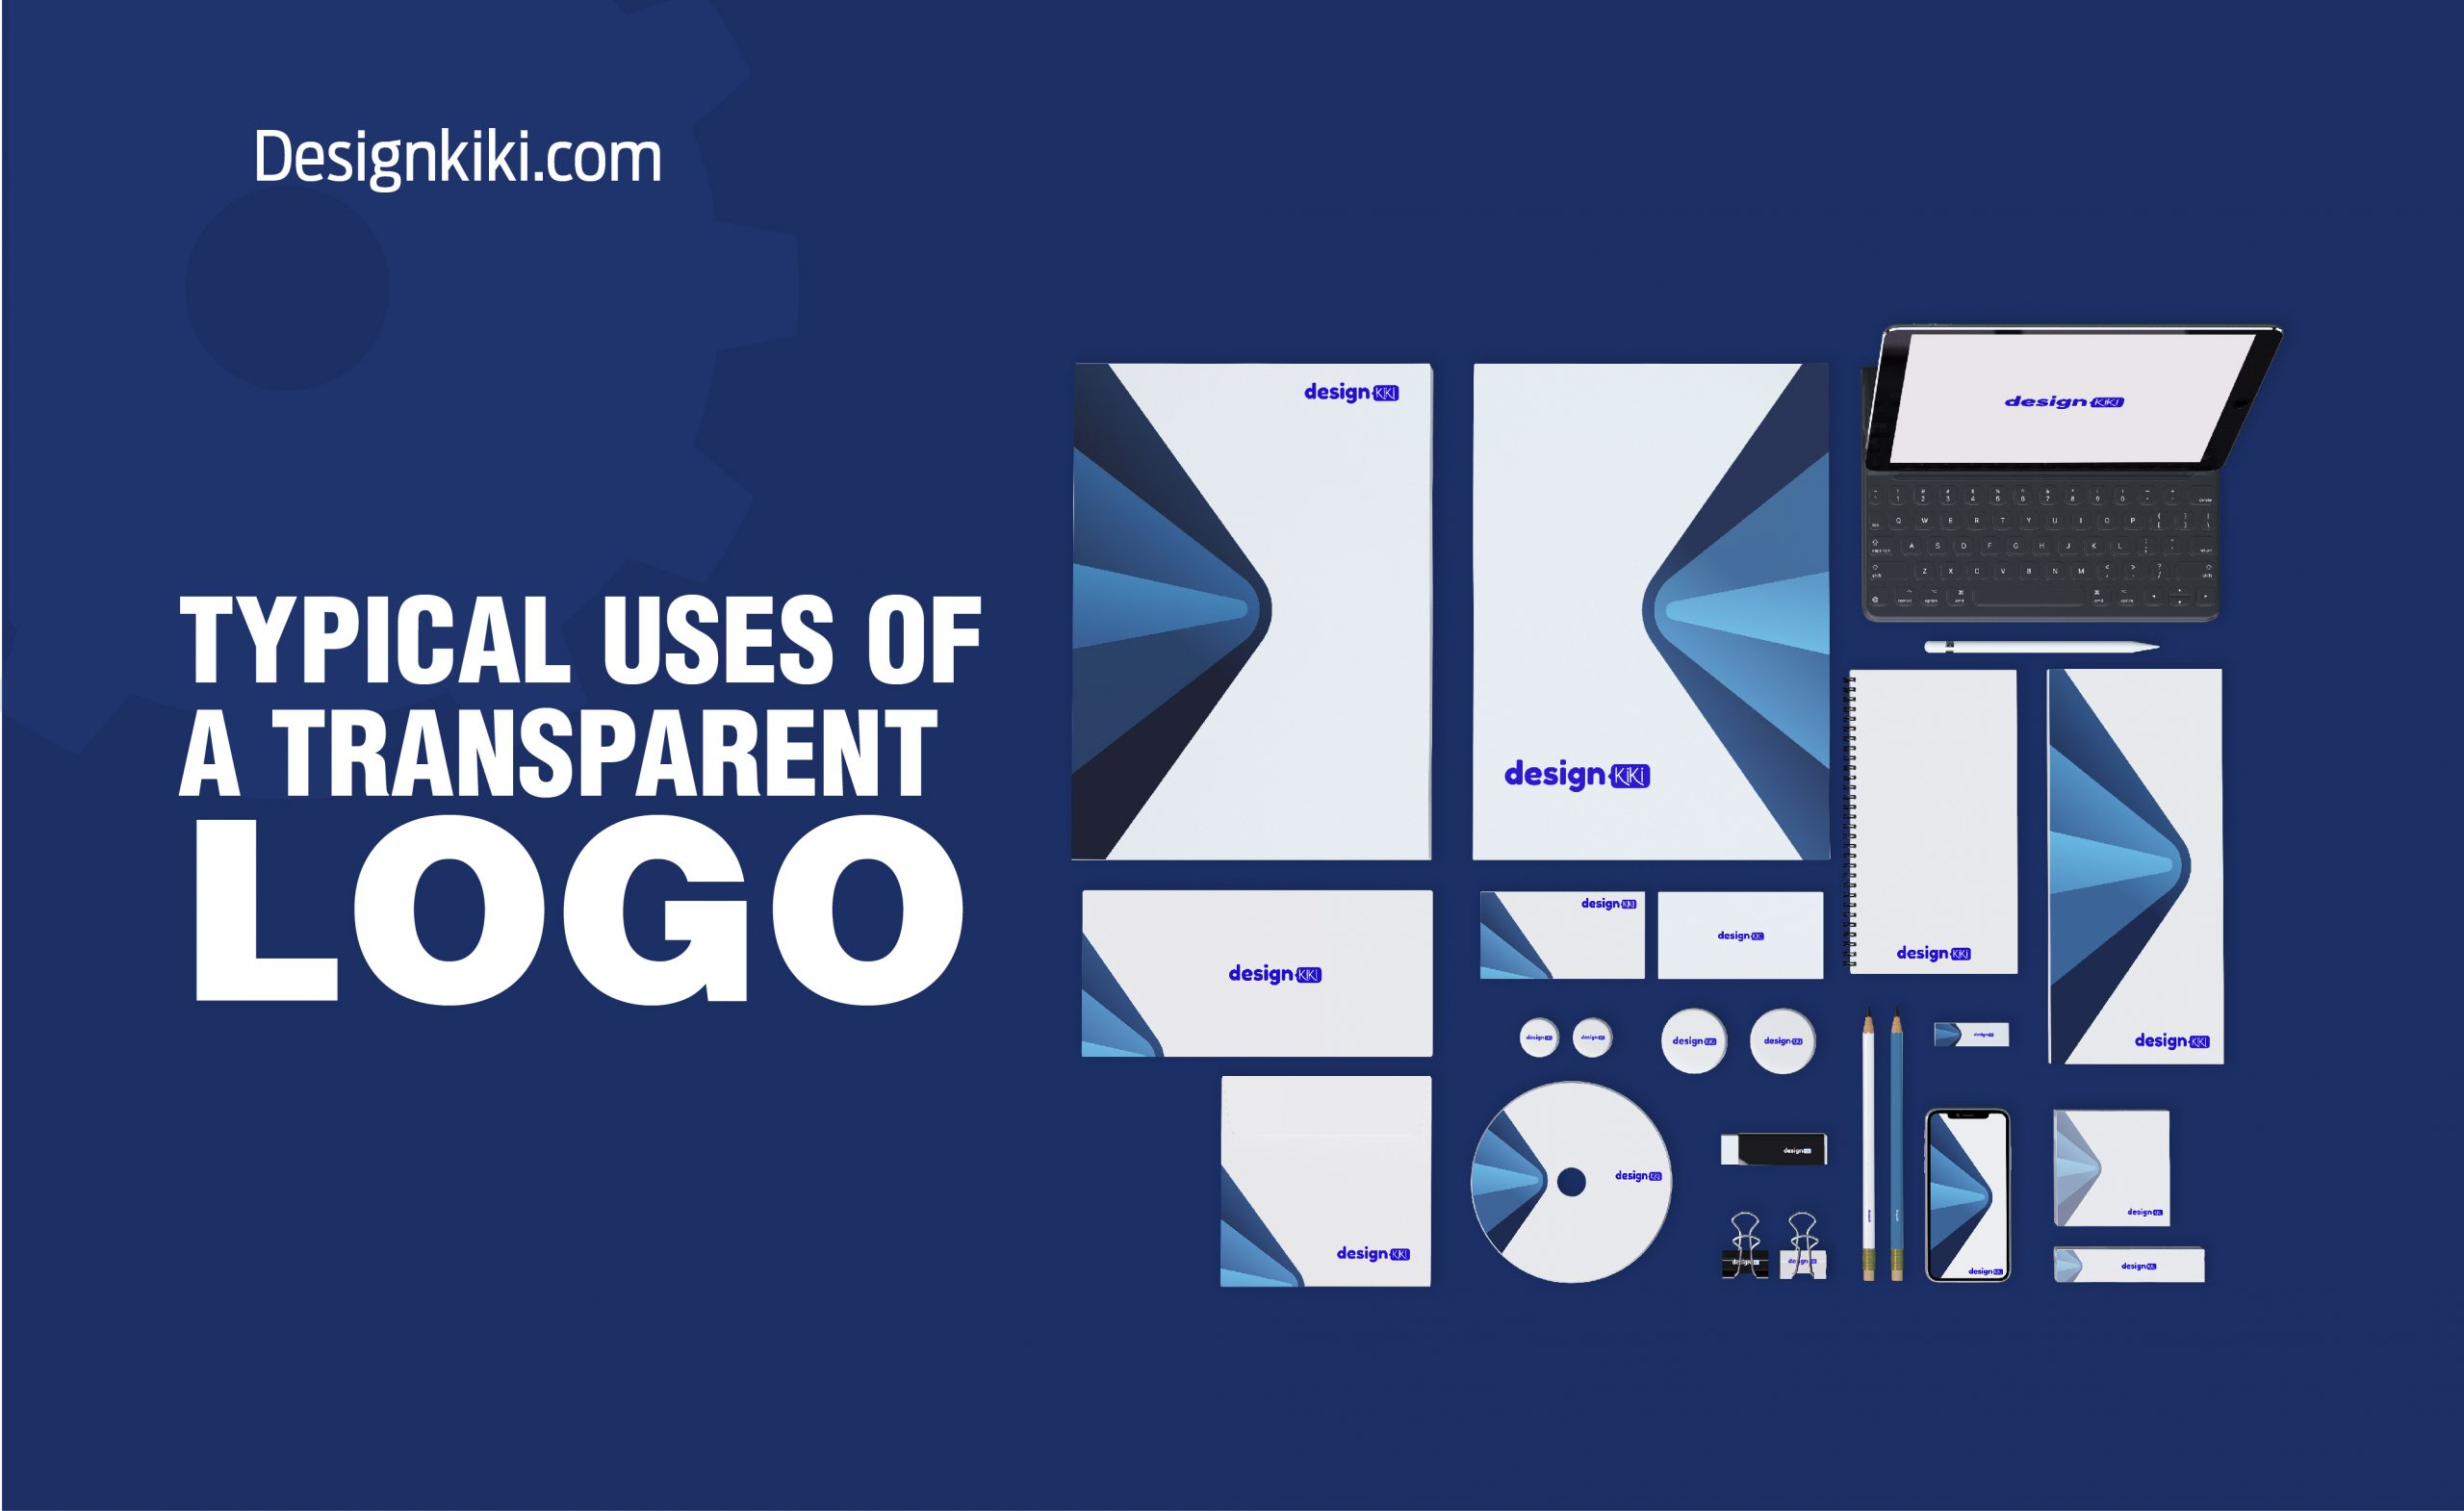 Typical uses of a transparent logo